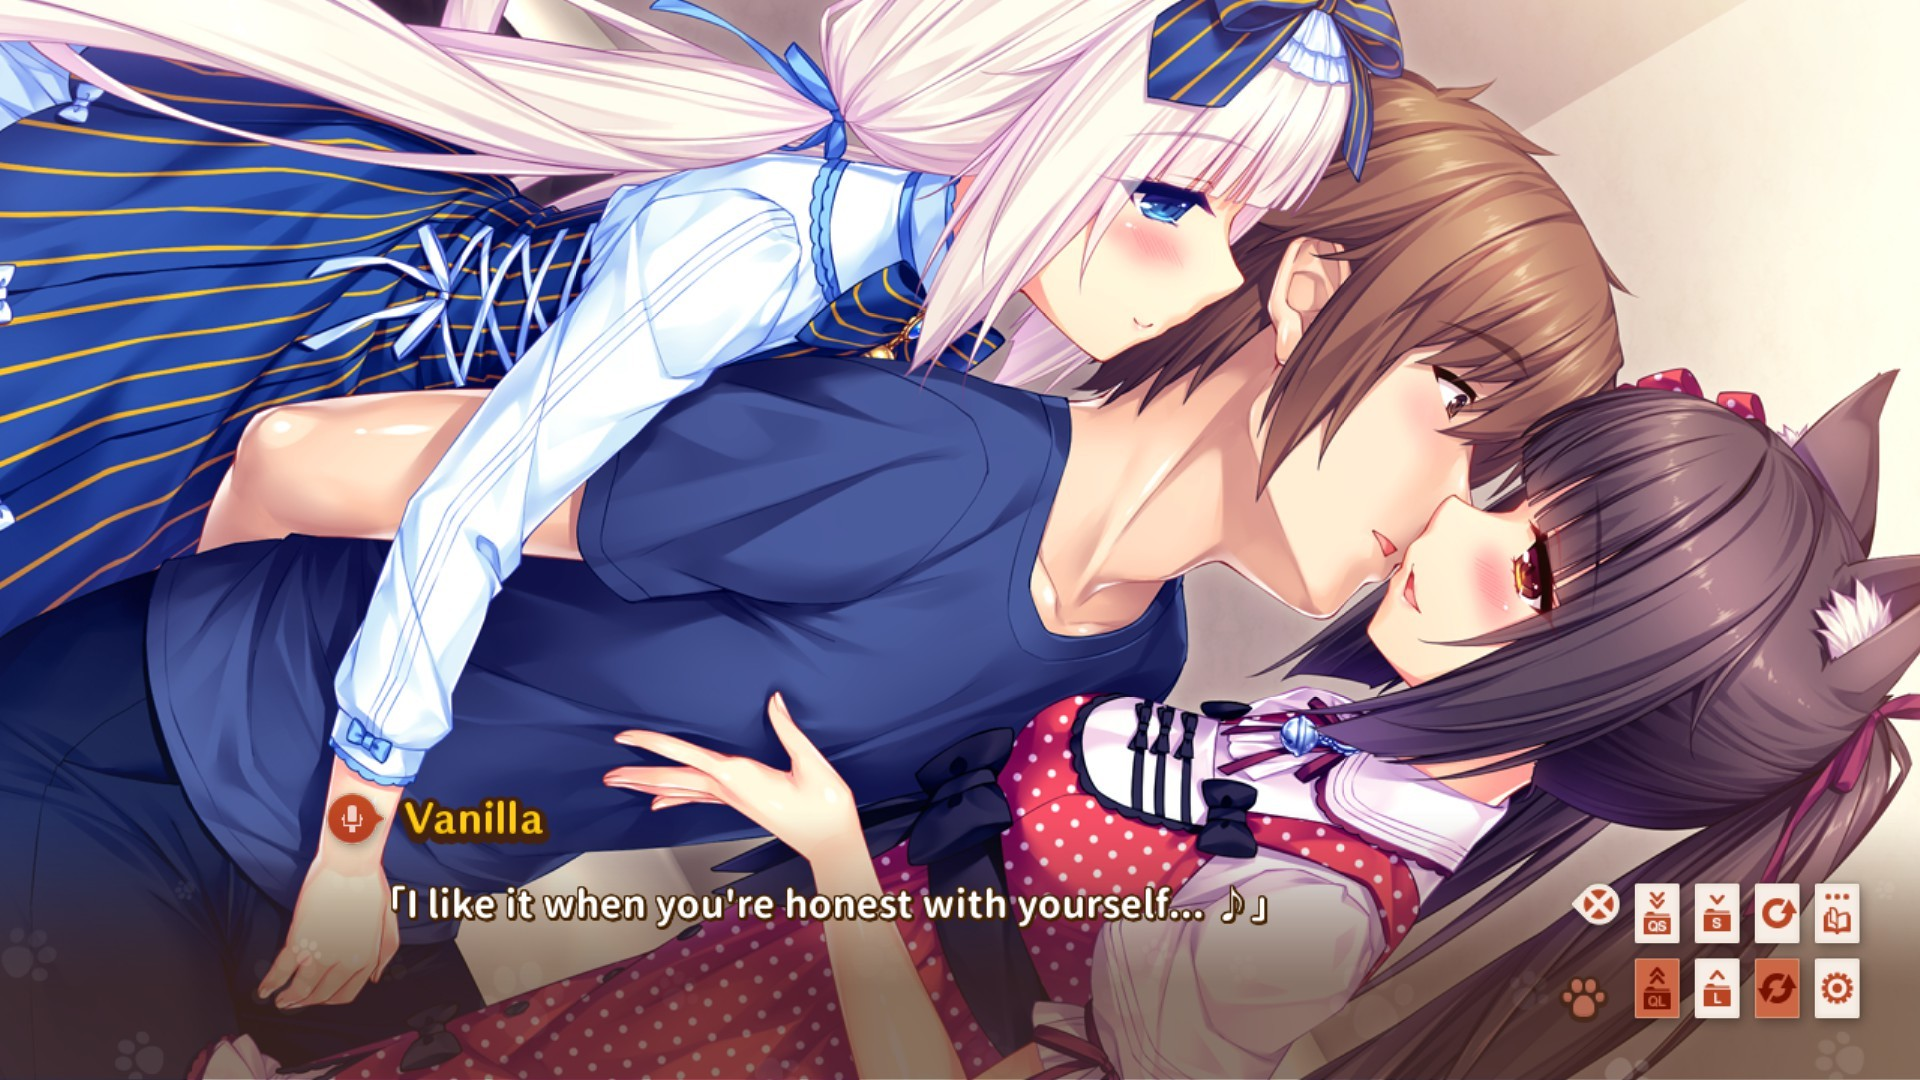 Res: 1920x1080, In this way, Nekopara acknowledges what has come before, but doesn't allow  itself to get bogged down in retreading old ground. Partway through vol.